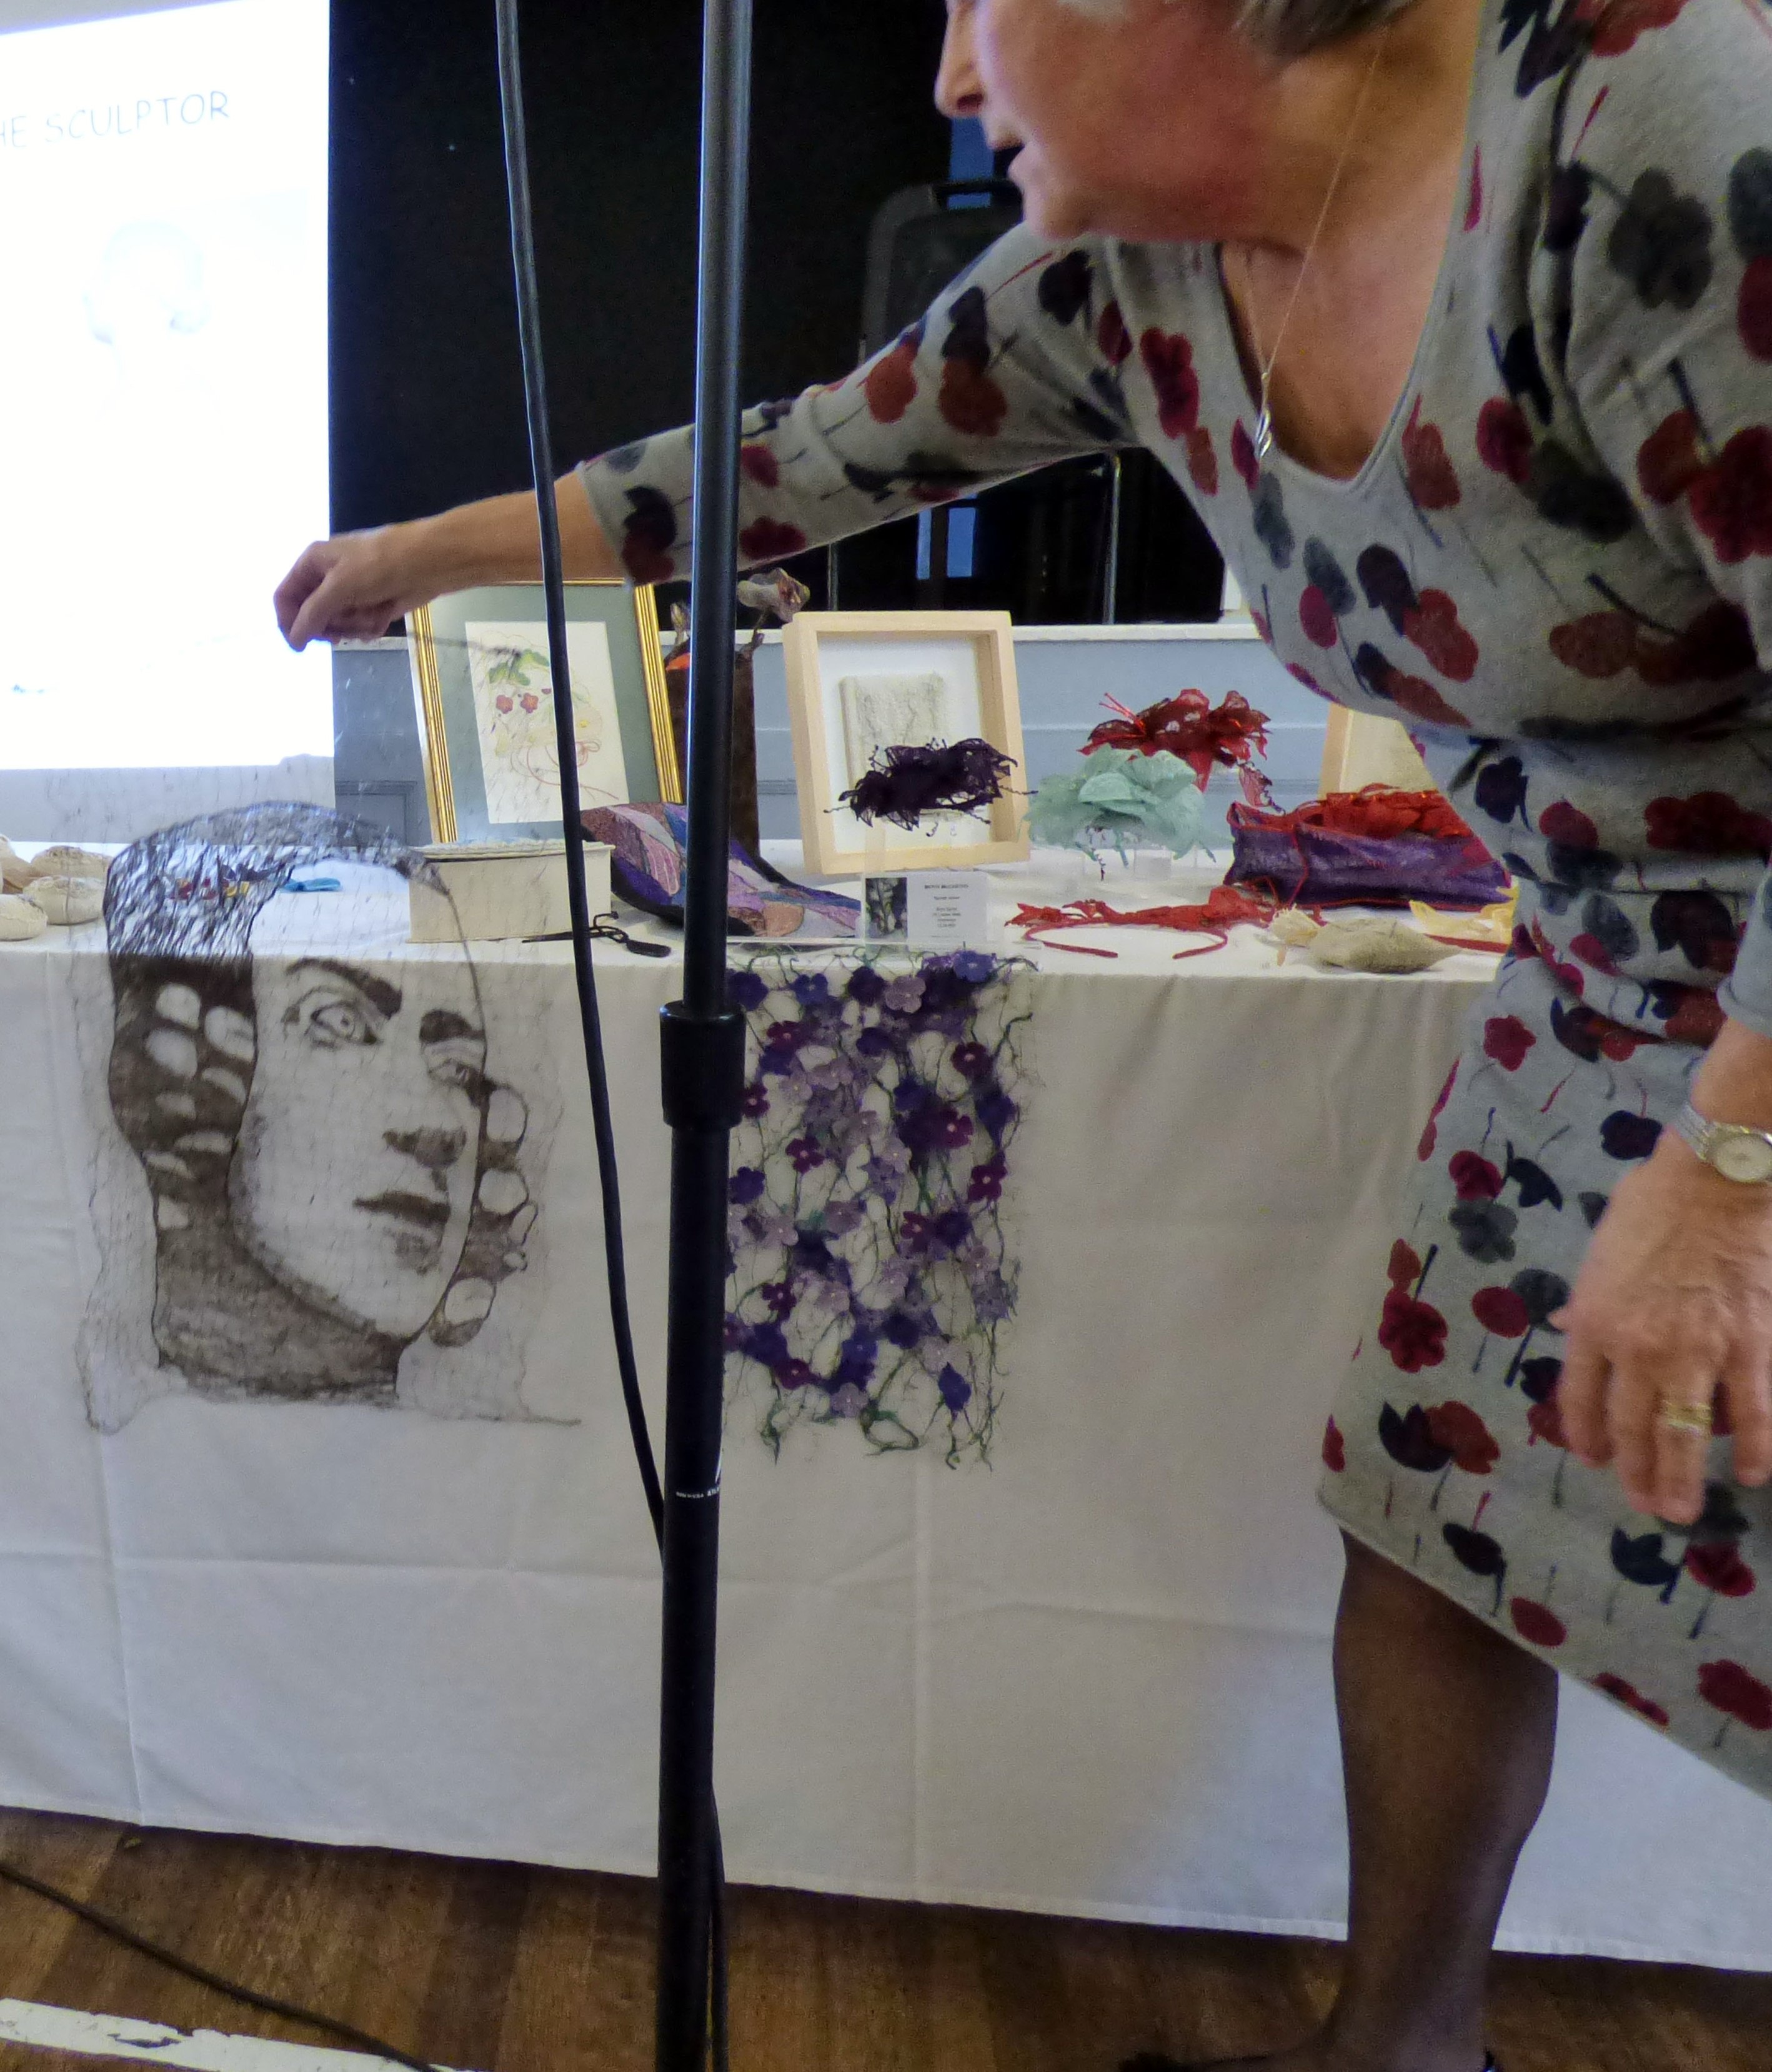 Moya McCarthy of N.Wales EG is showing us a wire embroidery